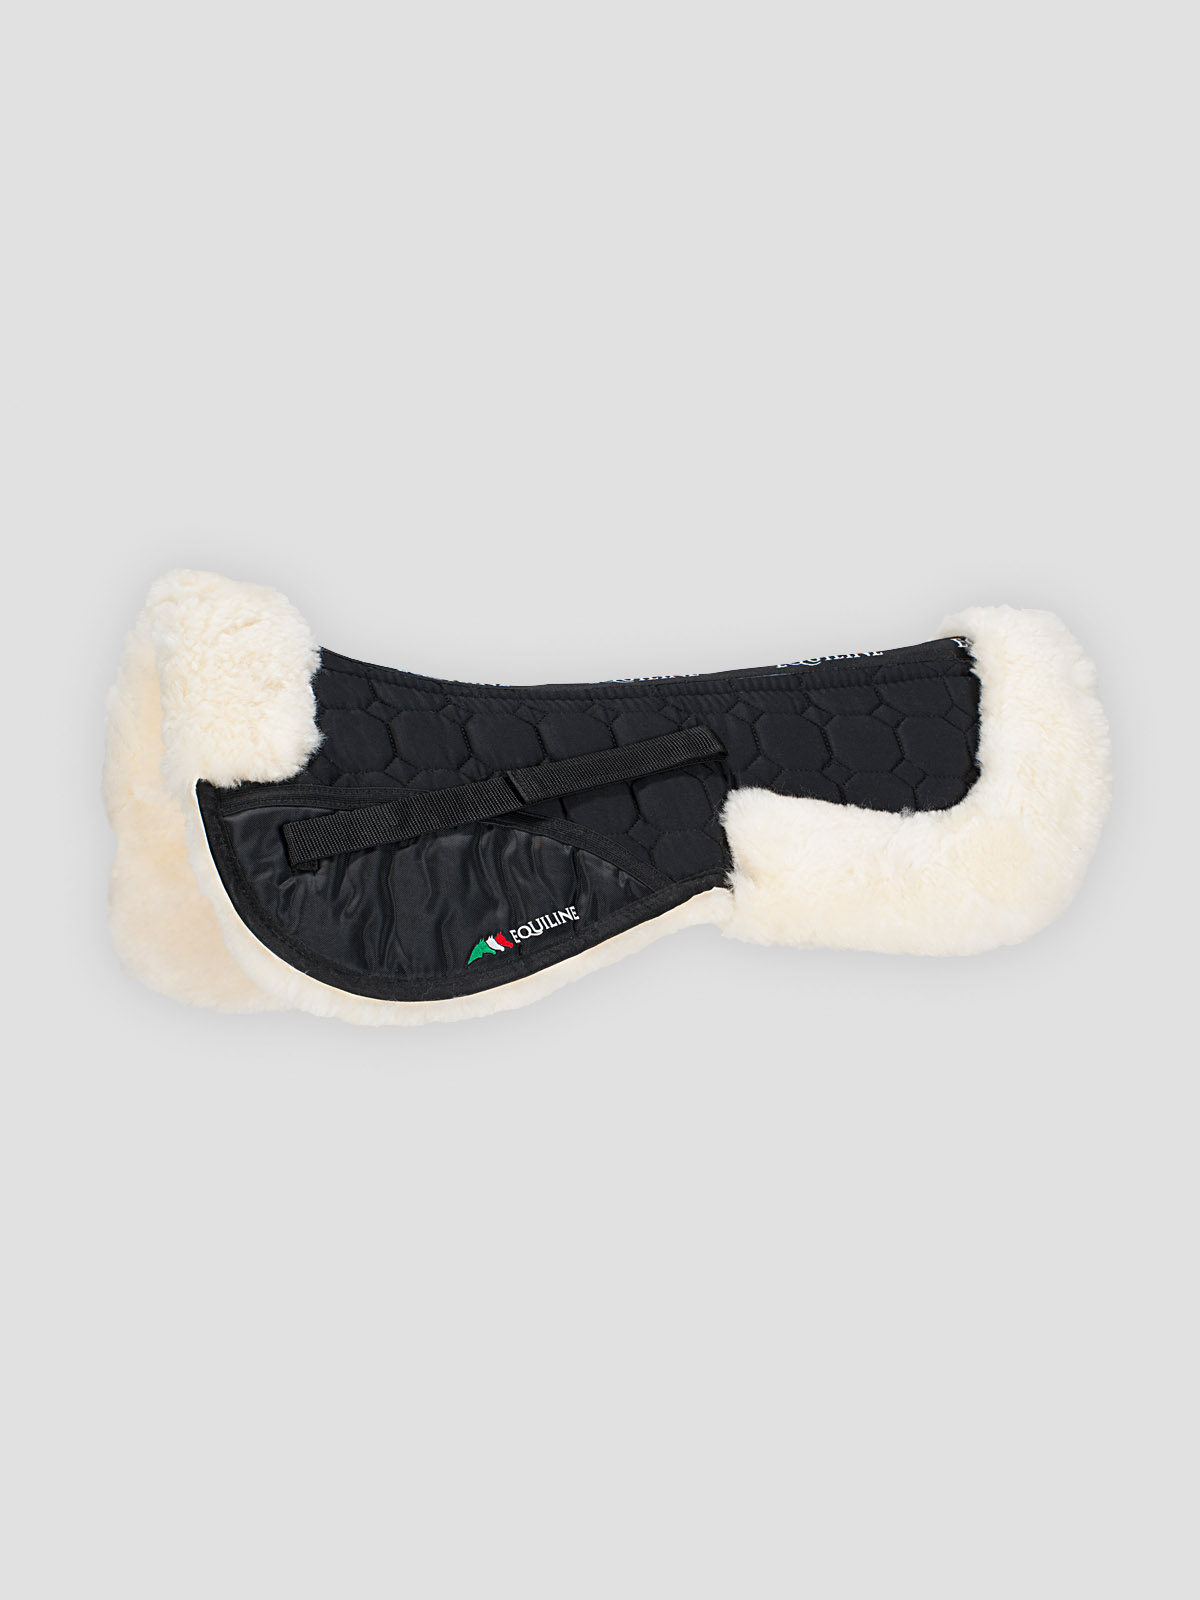 Equiline Argo sheepskin half pad in black/natural